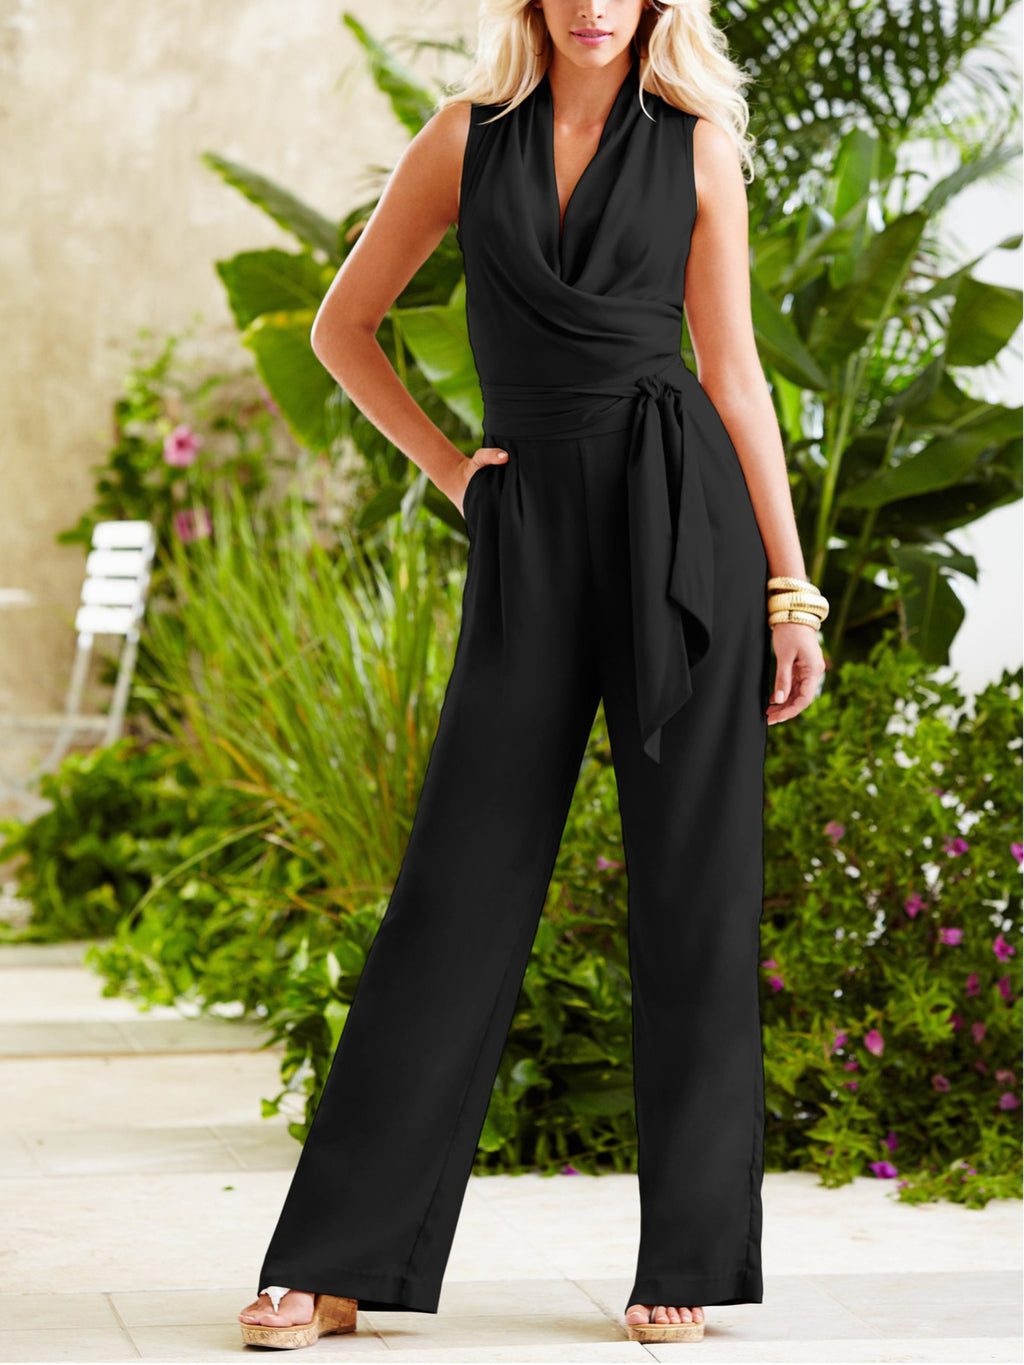 Black Loose Sleeveless Lace Jumpsuit